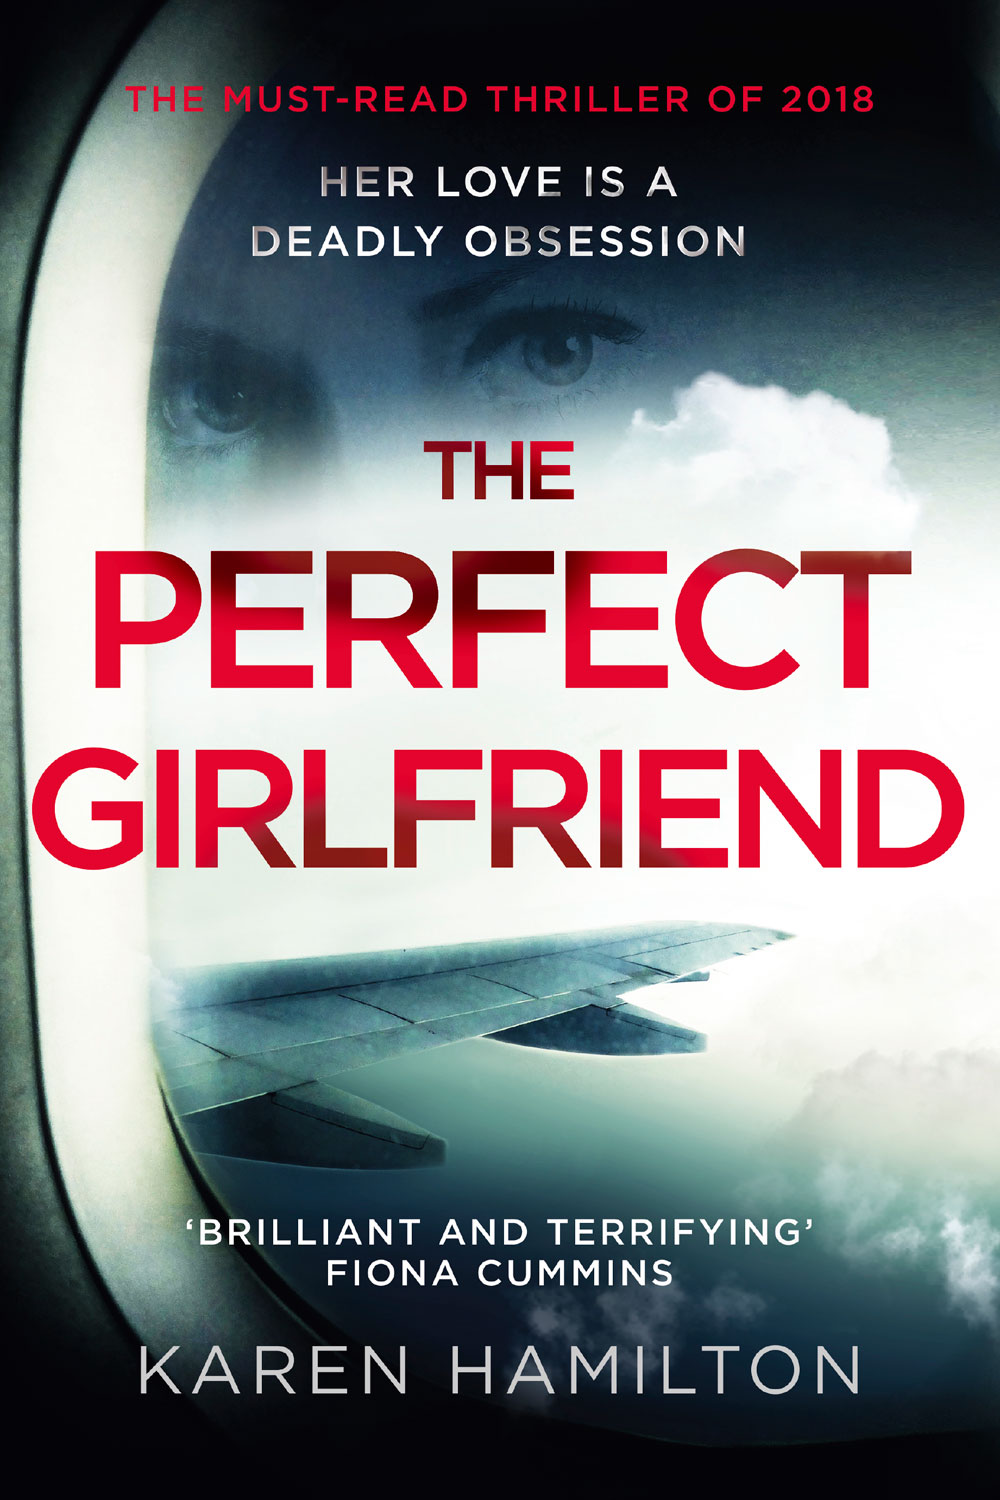 The Perfect Girlfriend by Karen Hamilton #BookReview#perfect